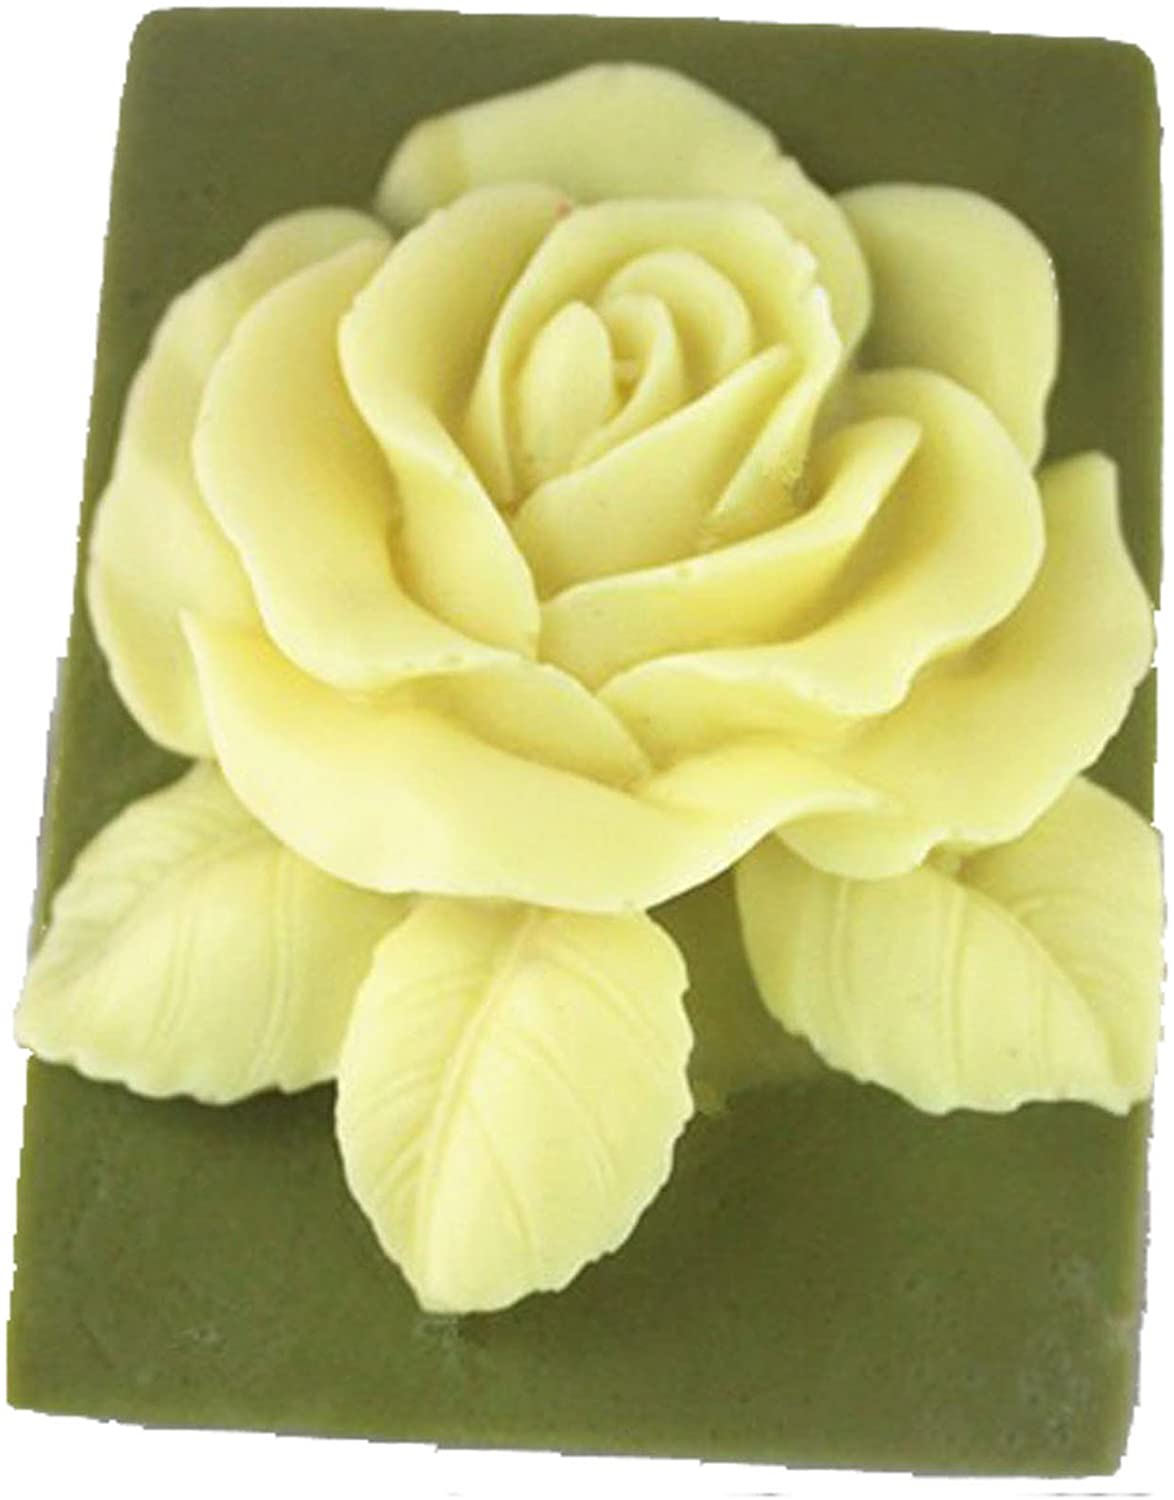 Longzang Rose Mould S358 Art Silicone Soap Craft DIY Handmade Candle Molds